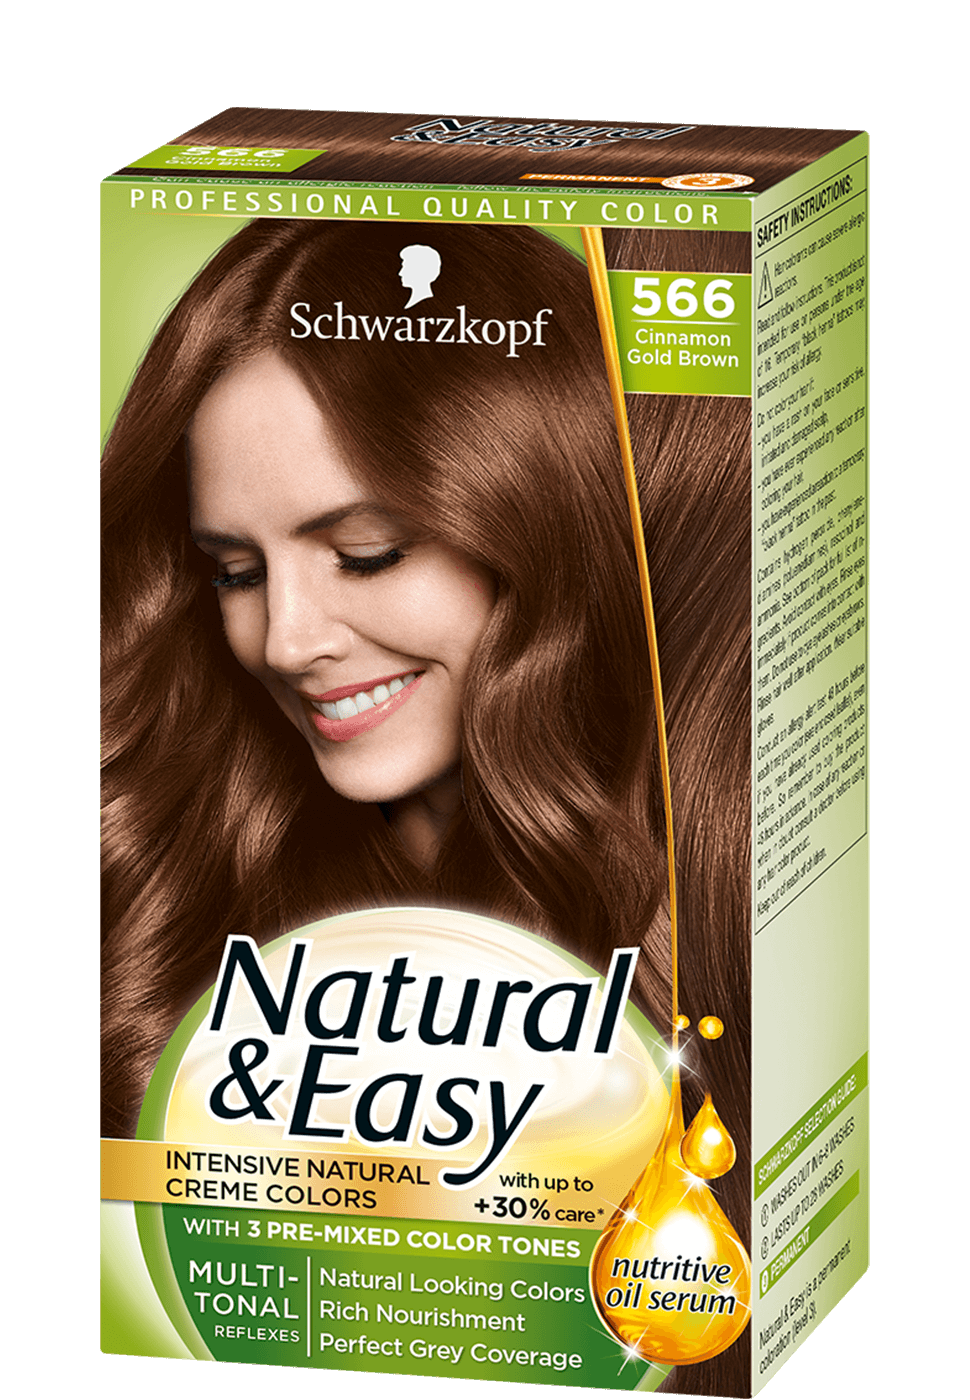 natural_easy_com_brown_hair_566_cinnamon_gold_brown_970x1400